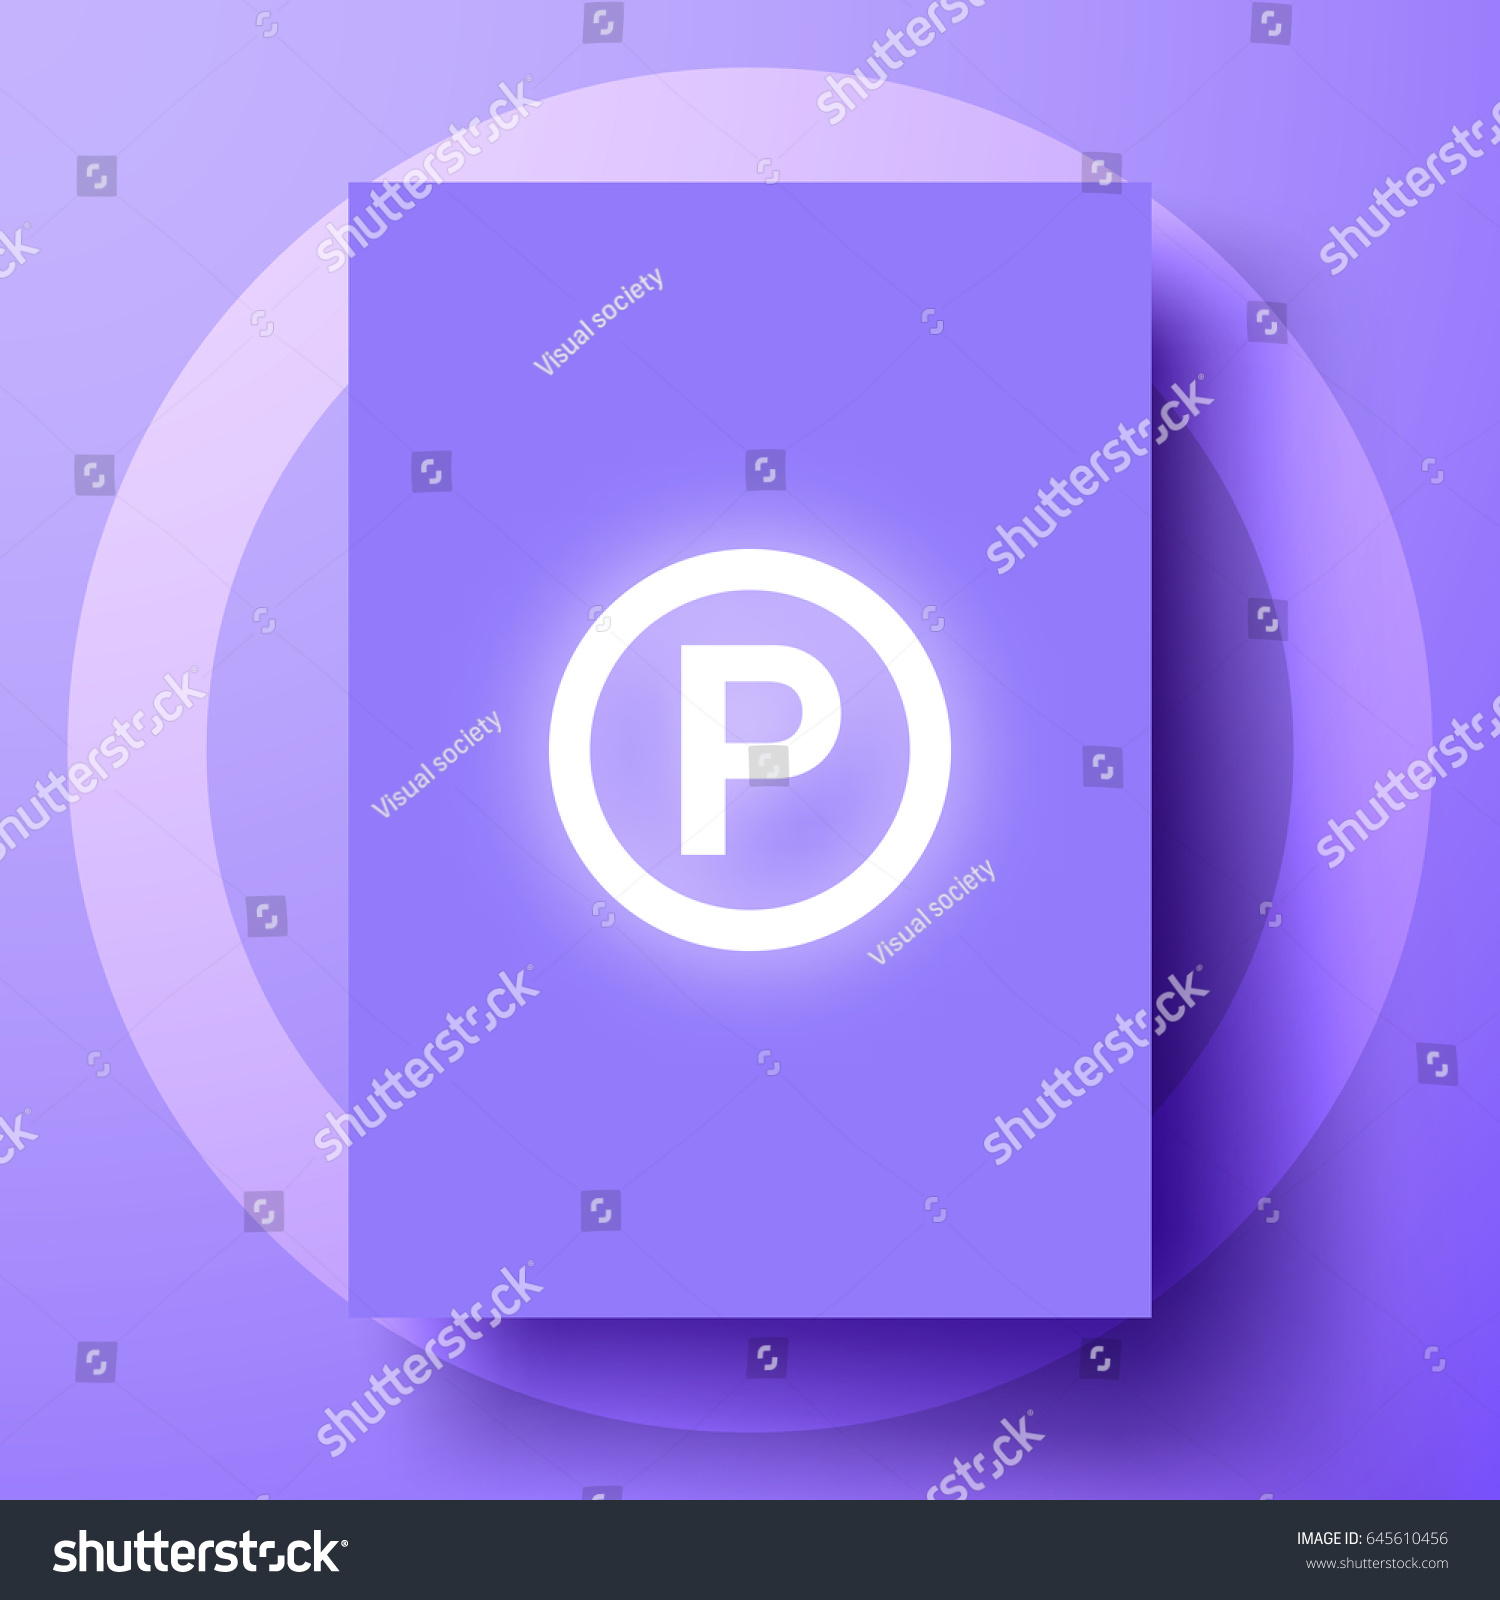 P sound recording copyright symbol shining stock vector 645610456 p sound recording copyright symbol shining on a purple poster isolated on violet background biocorpaavc